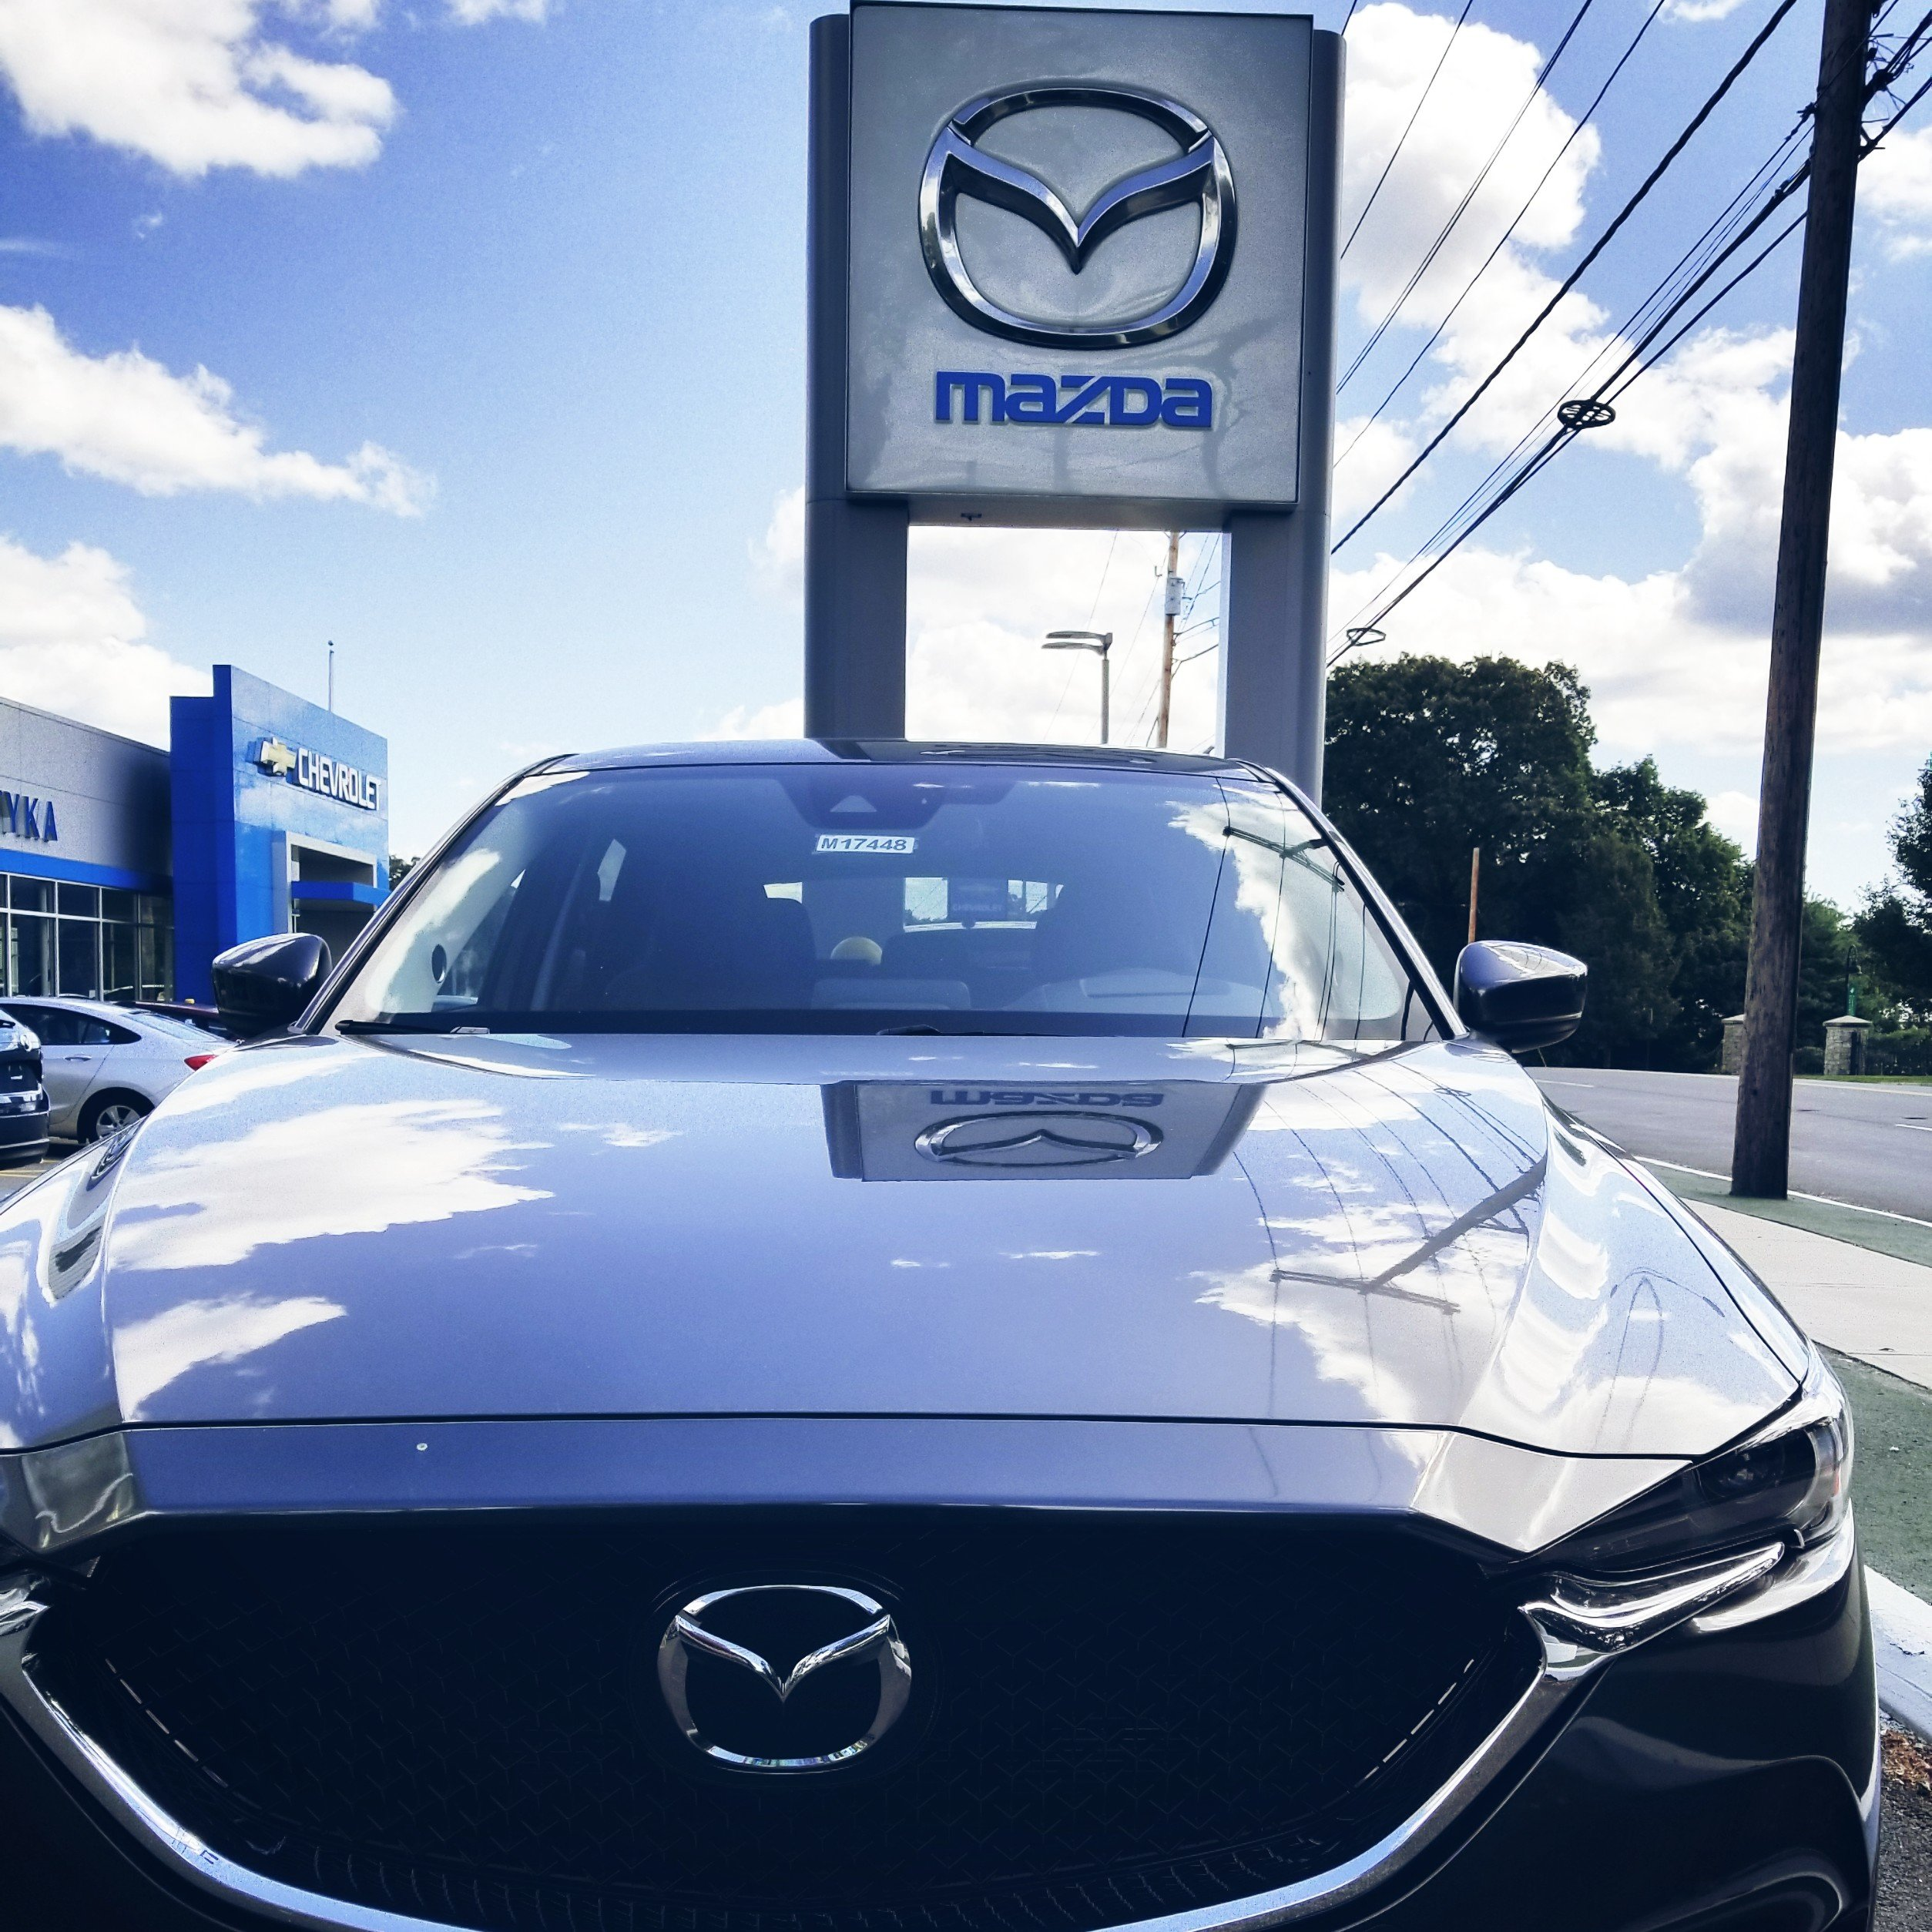 tamworth dealership oxford solihull gloucester tel mazda ma swindon